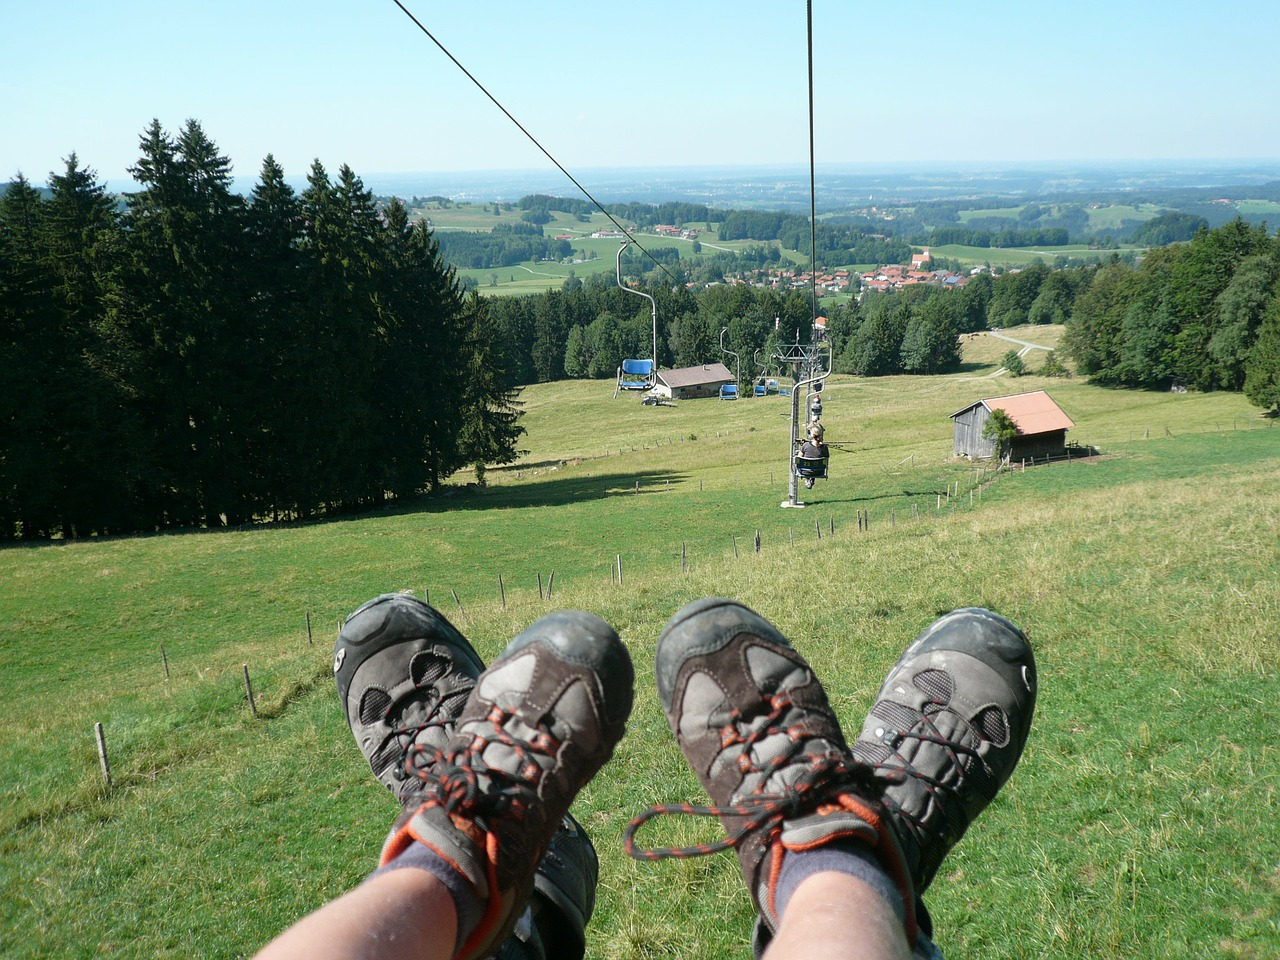 hochries,lift,feet,view,chairlift,mountaineering shoes,benefit from,alpine,mountain meadows,free pictures, free photos, free images, royalty free, free illustrations, public domain